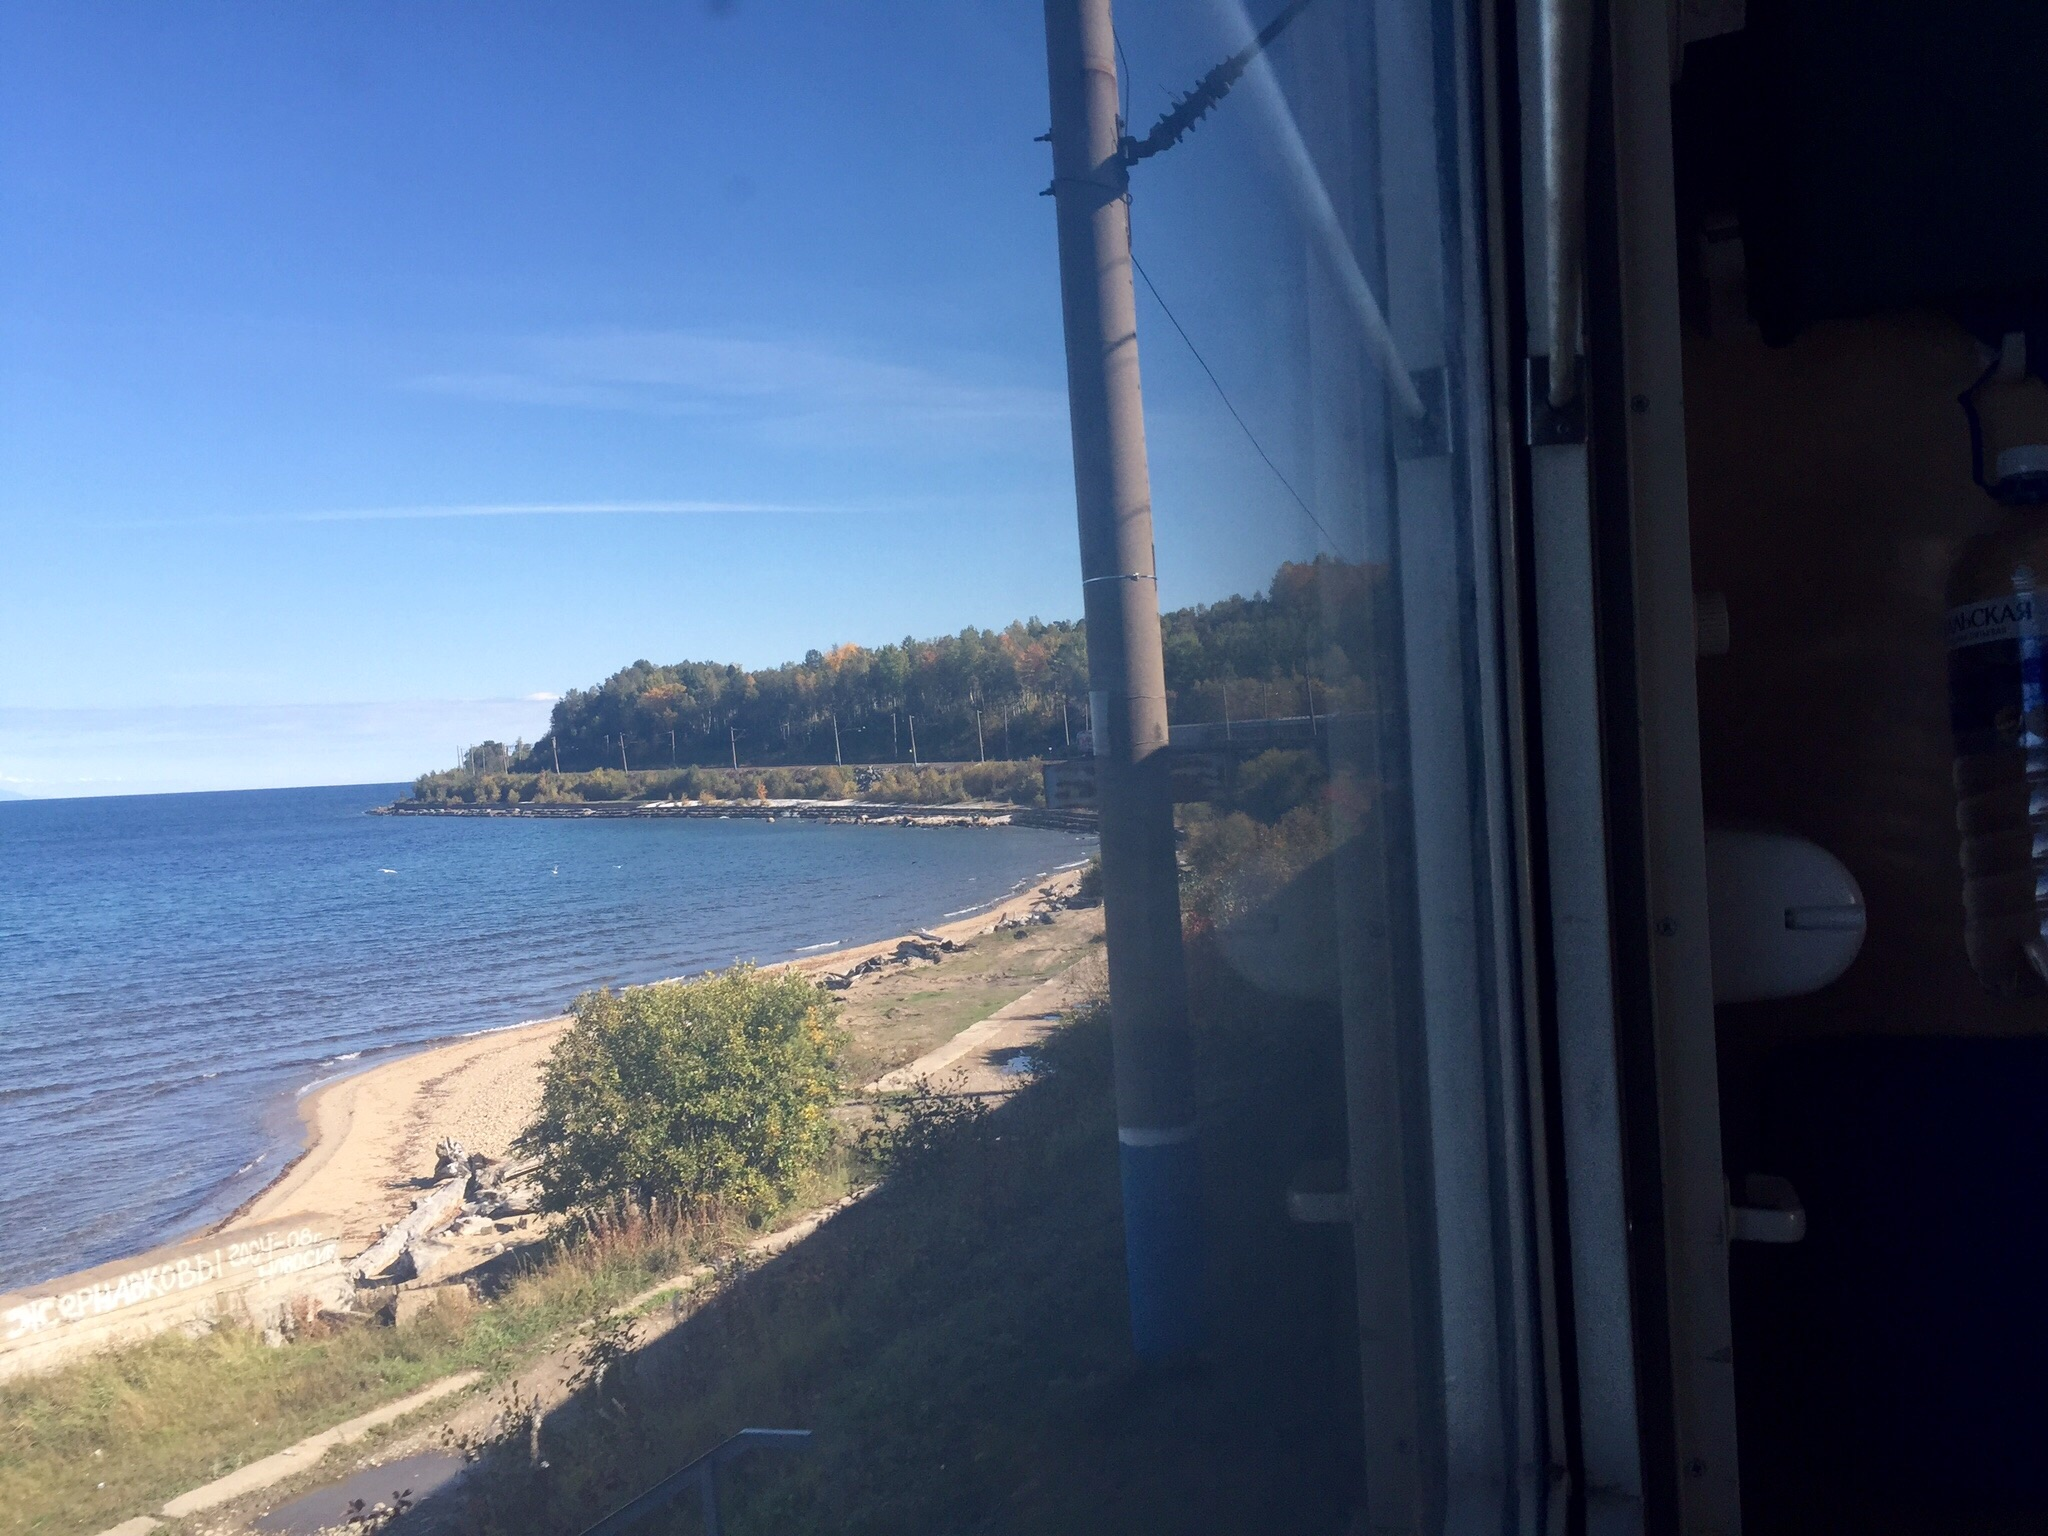 This was the one time when we went around a bend and I looked at the right moment to see the back of the train from our compartment.